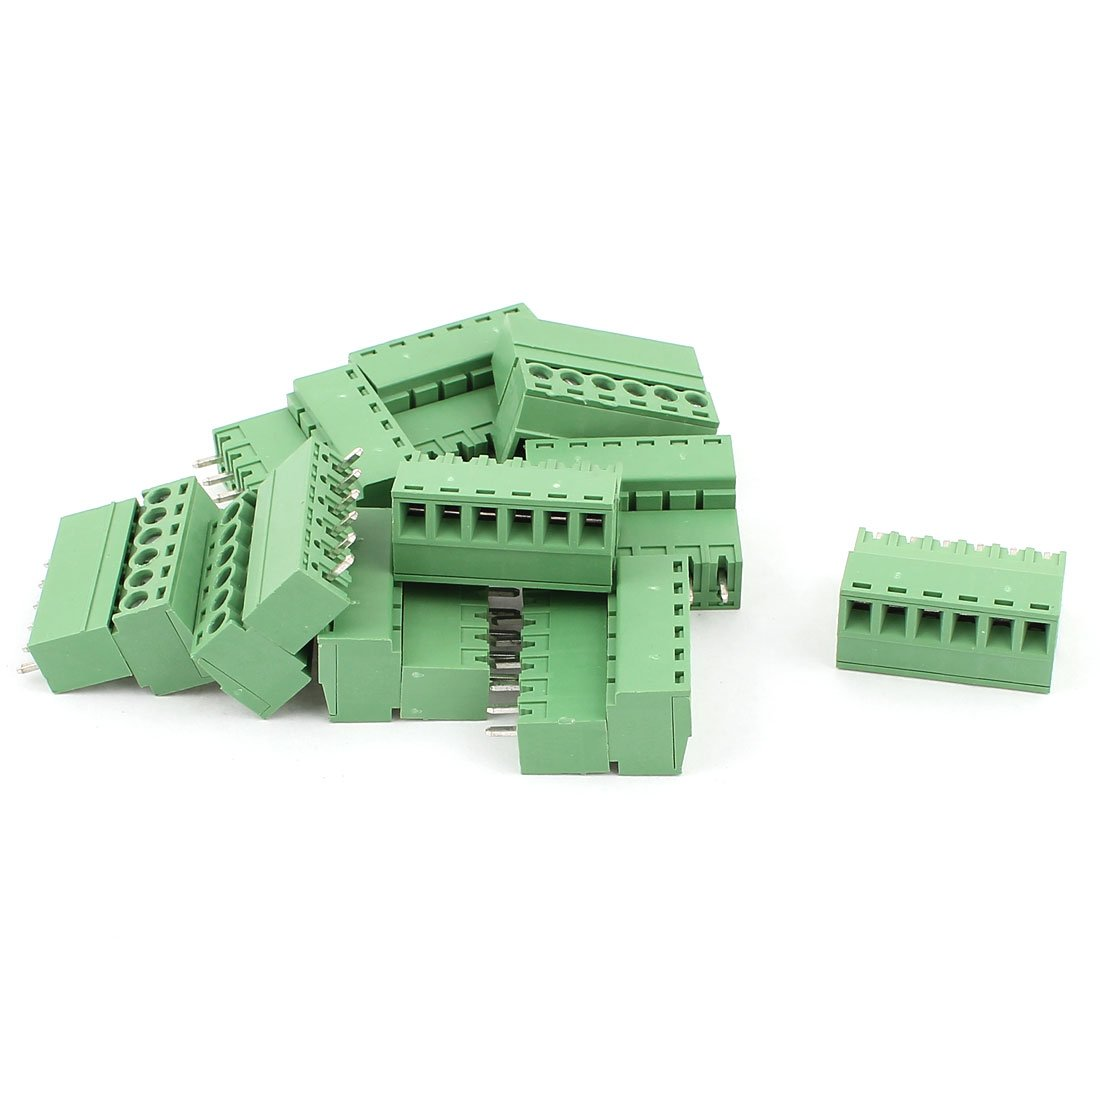 uxcell AC 300V 8A 6 Pins PCB Screw Terminal Block 3.81mm Pitch 10 Pcs Green